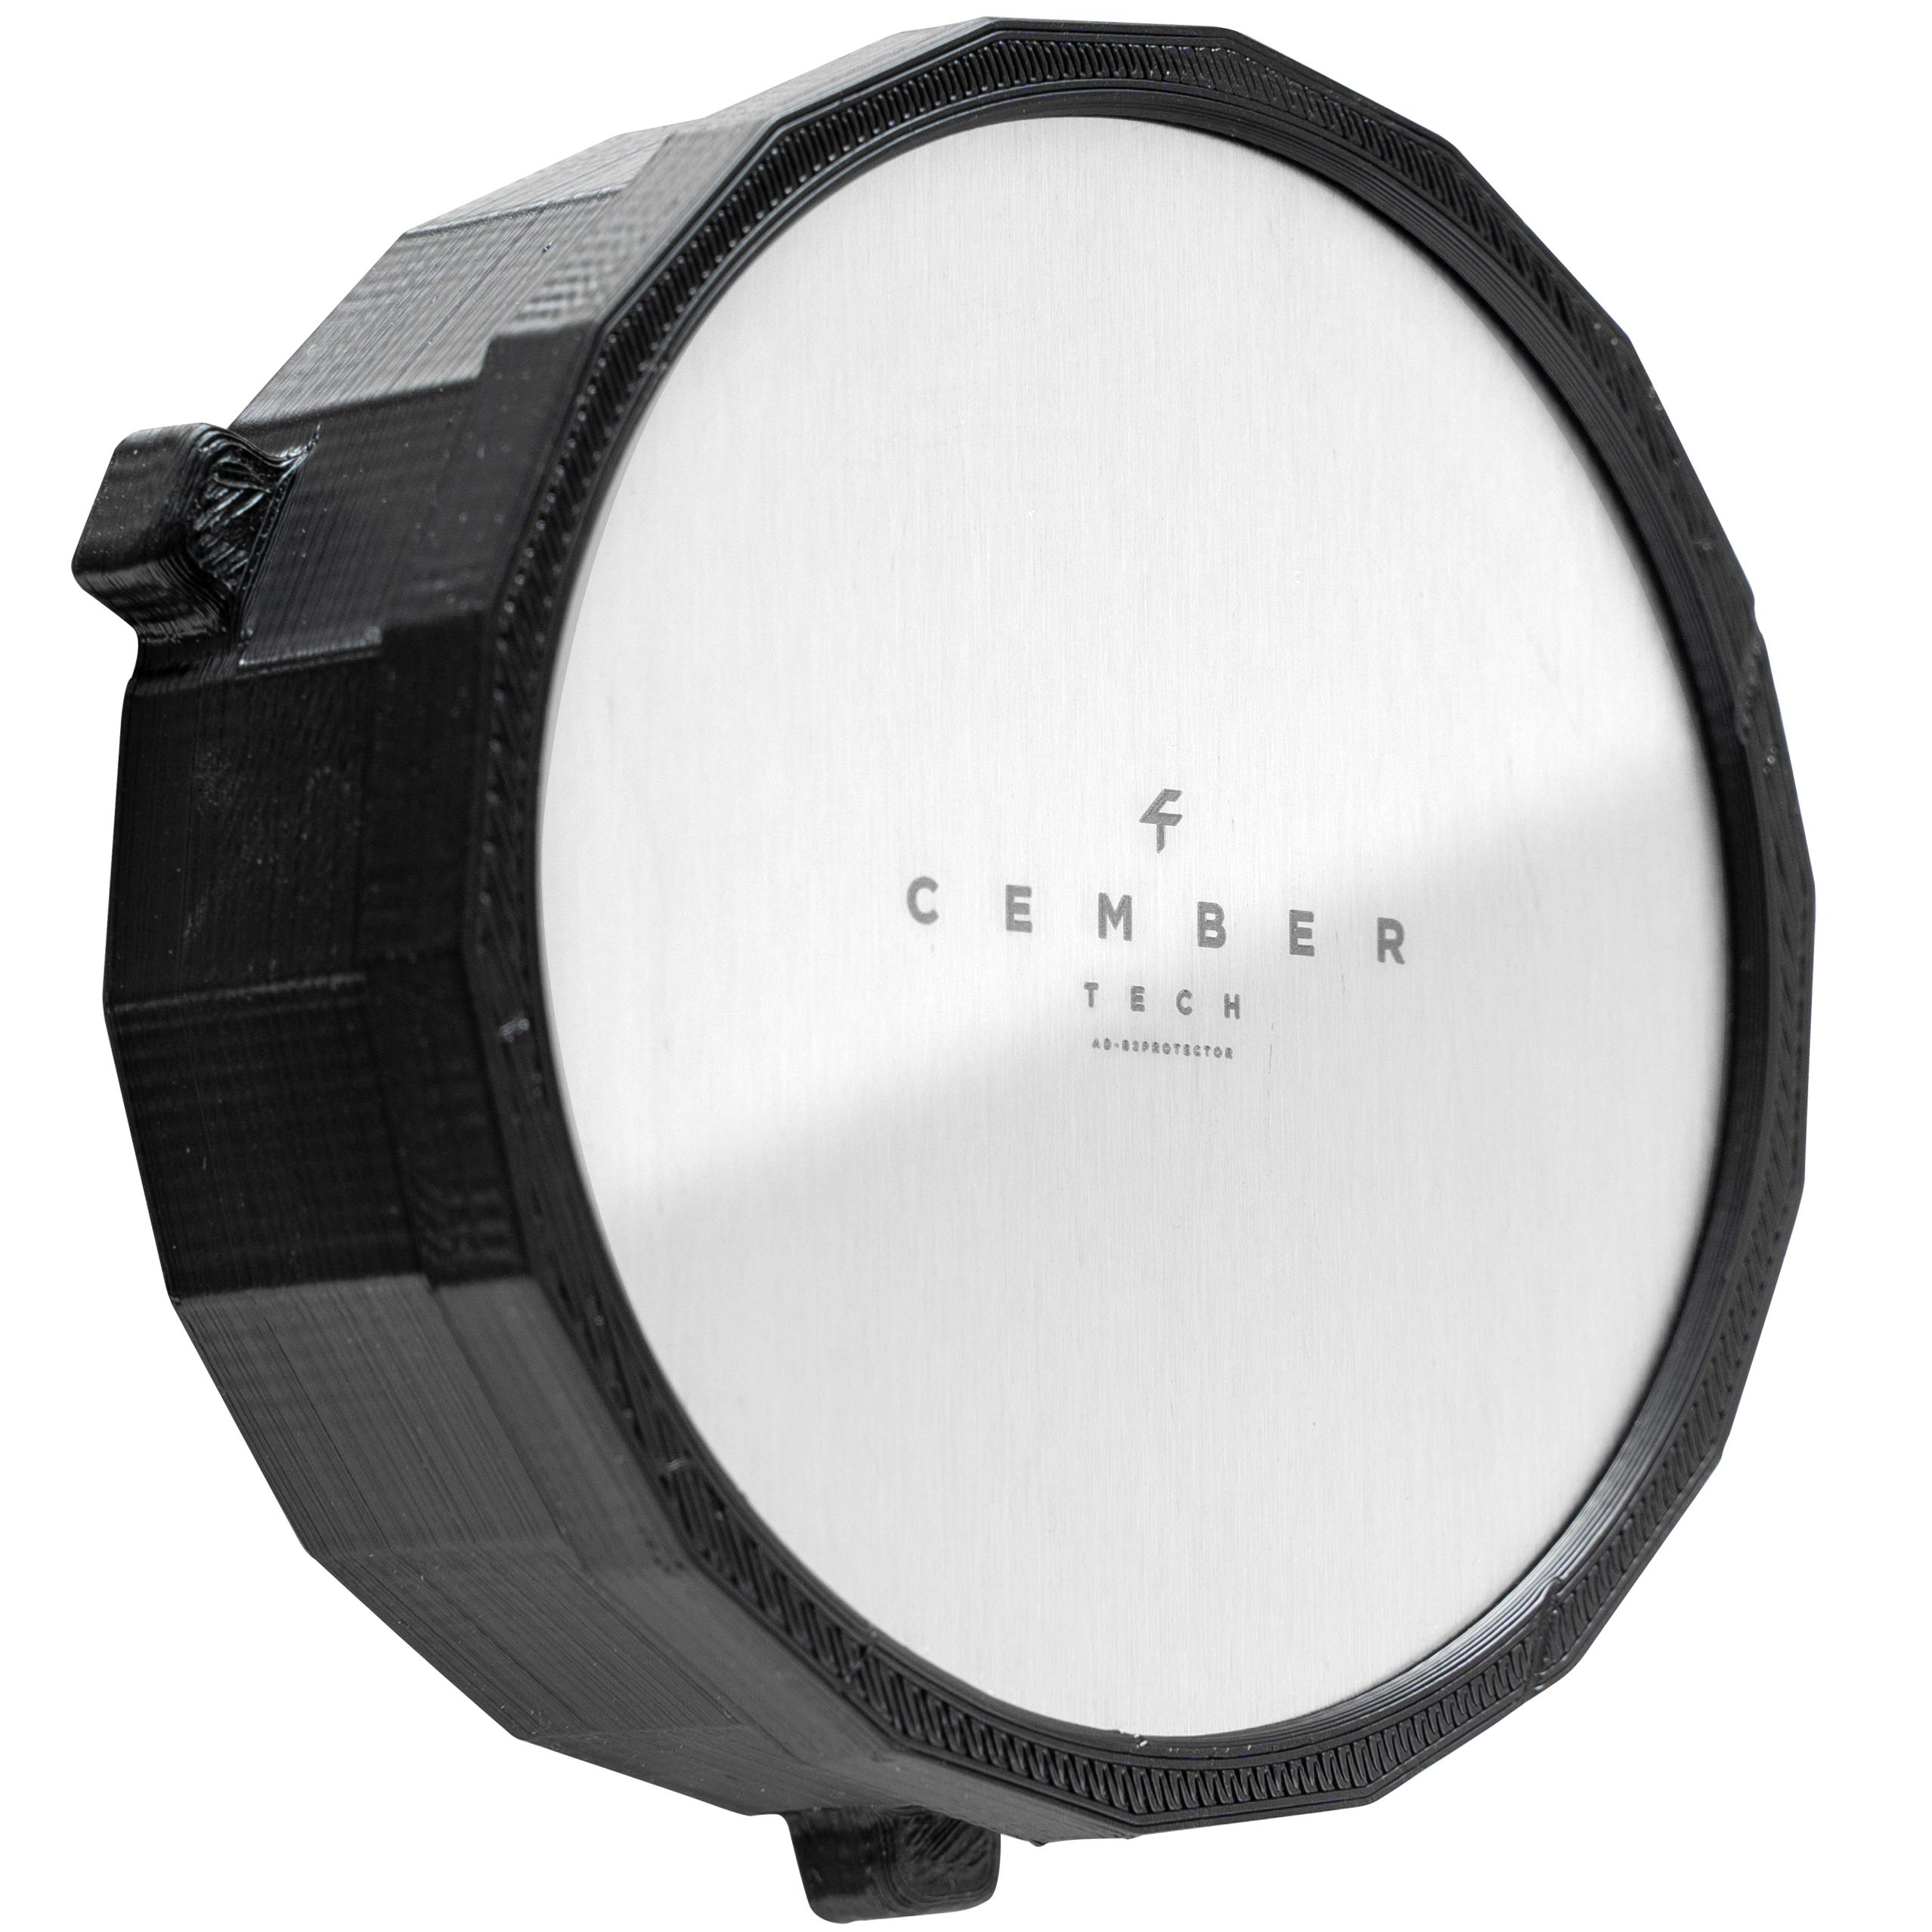 AD-B2 LED Protector Cap by Cember Tech